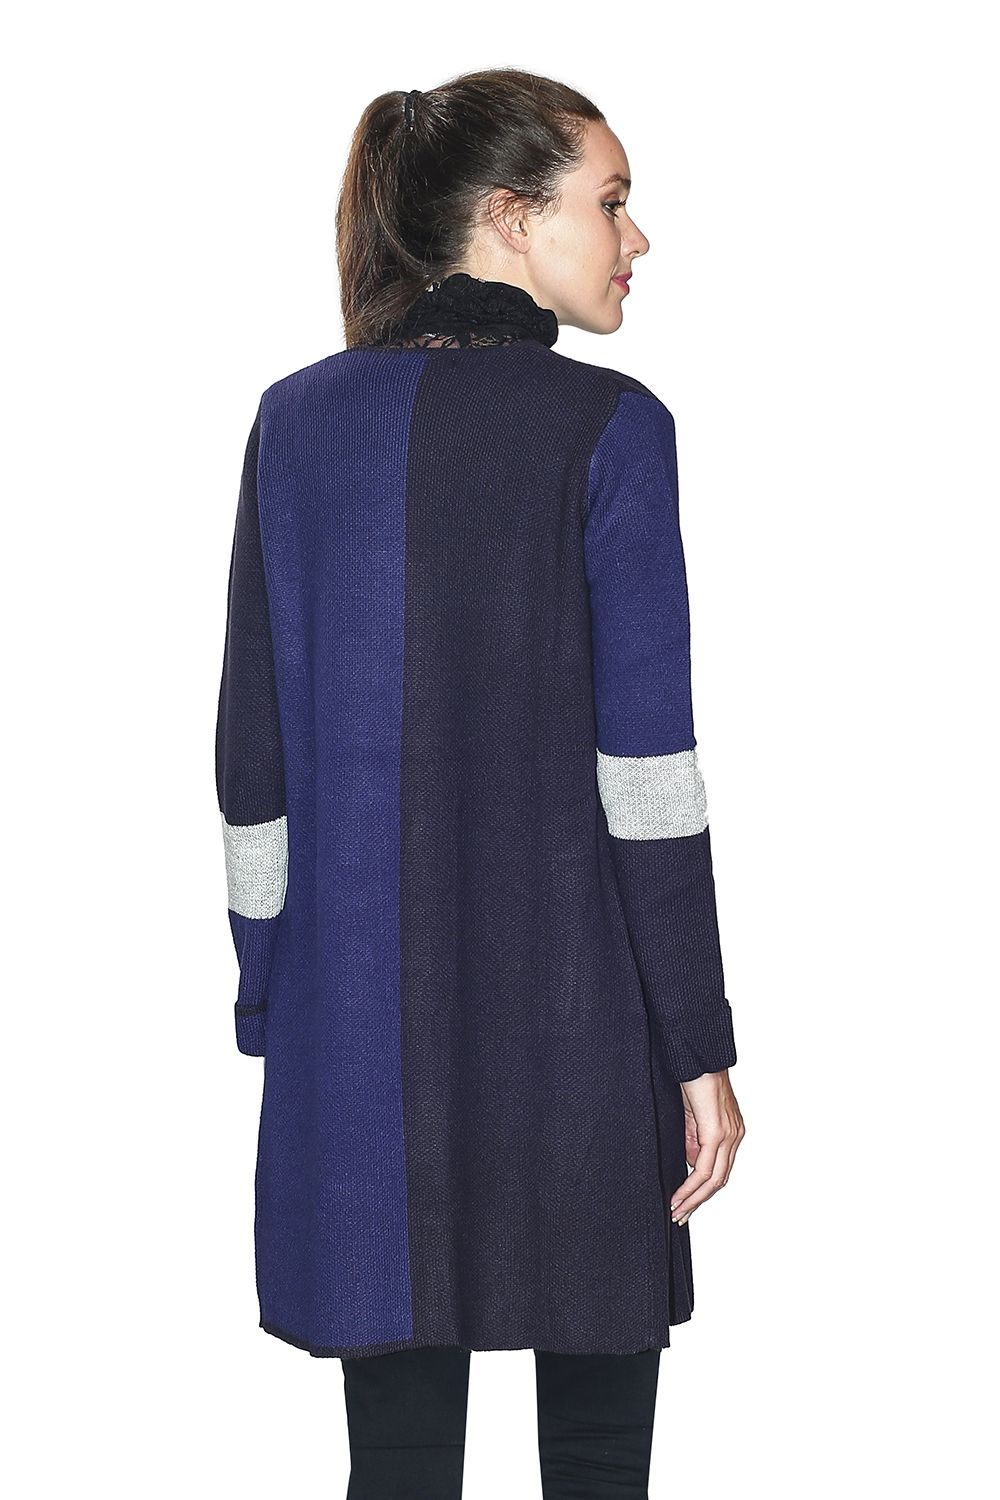 Assuili Long Sleeve Jacquard Patterned Cardigan with Aviator Sleeves and Pockets in Navy